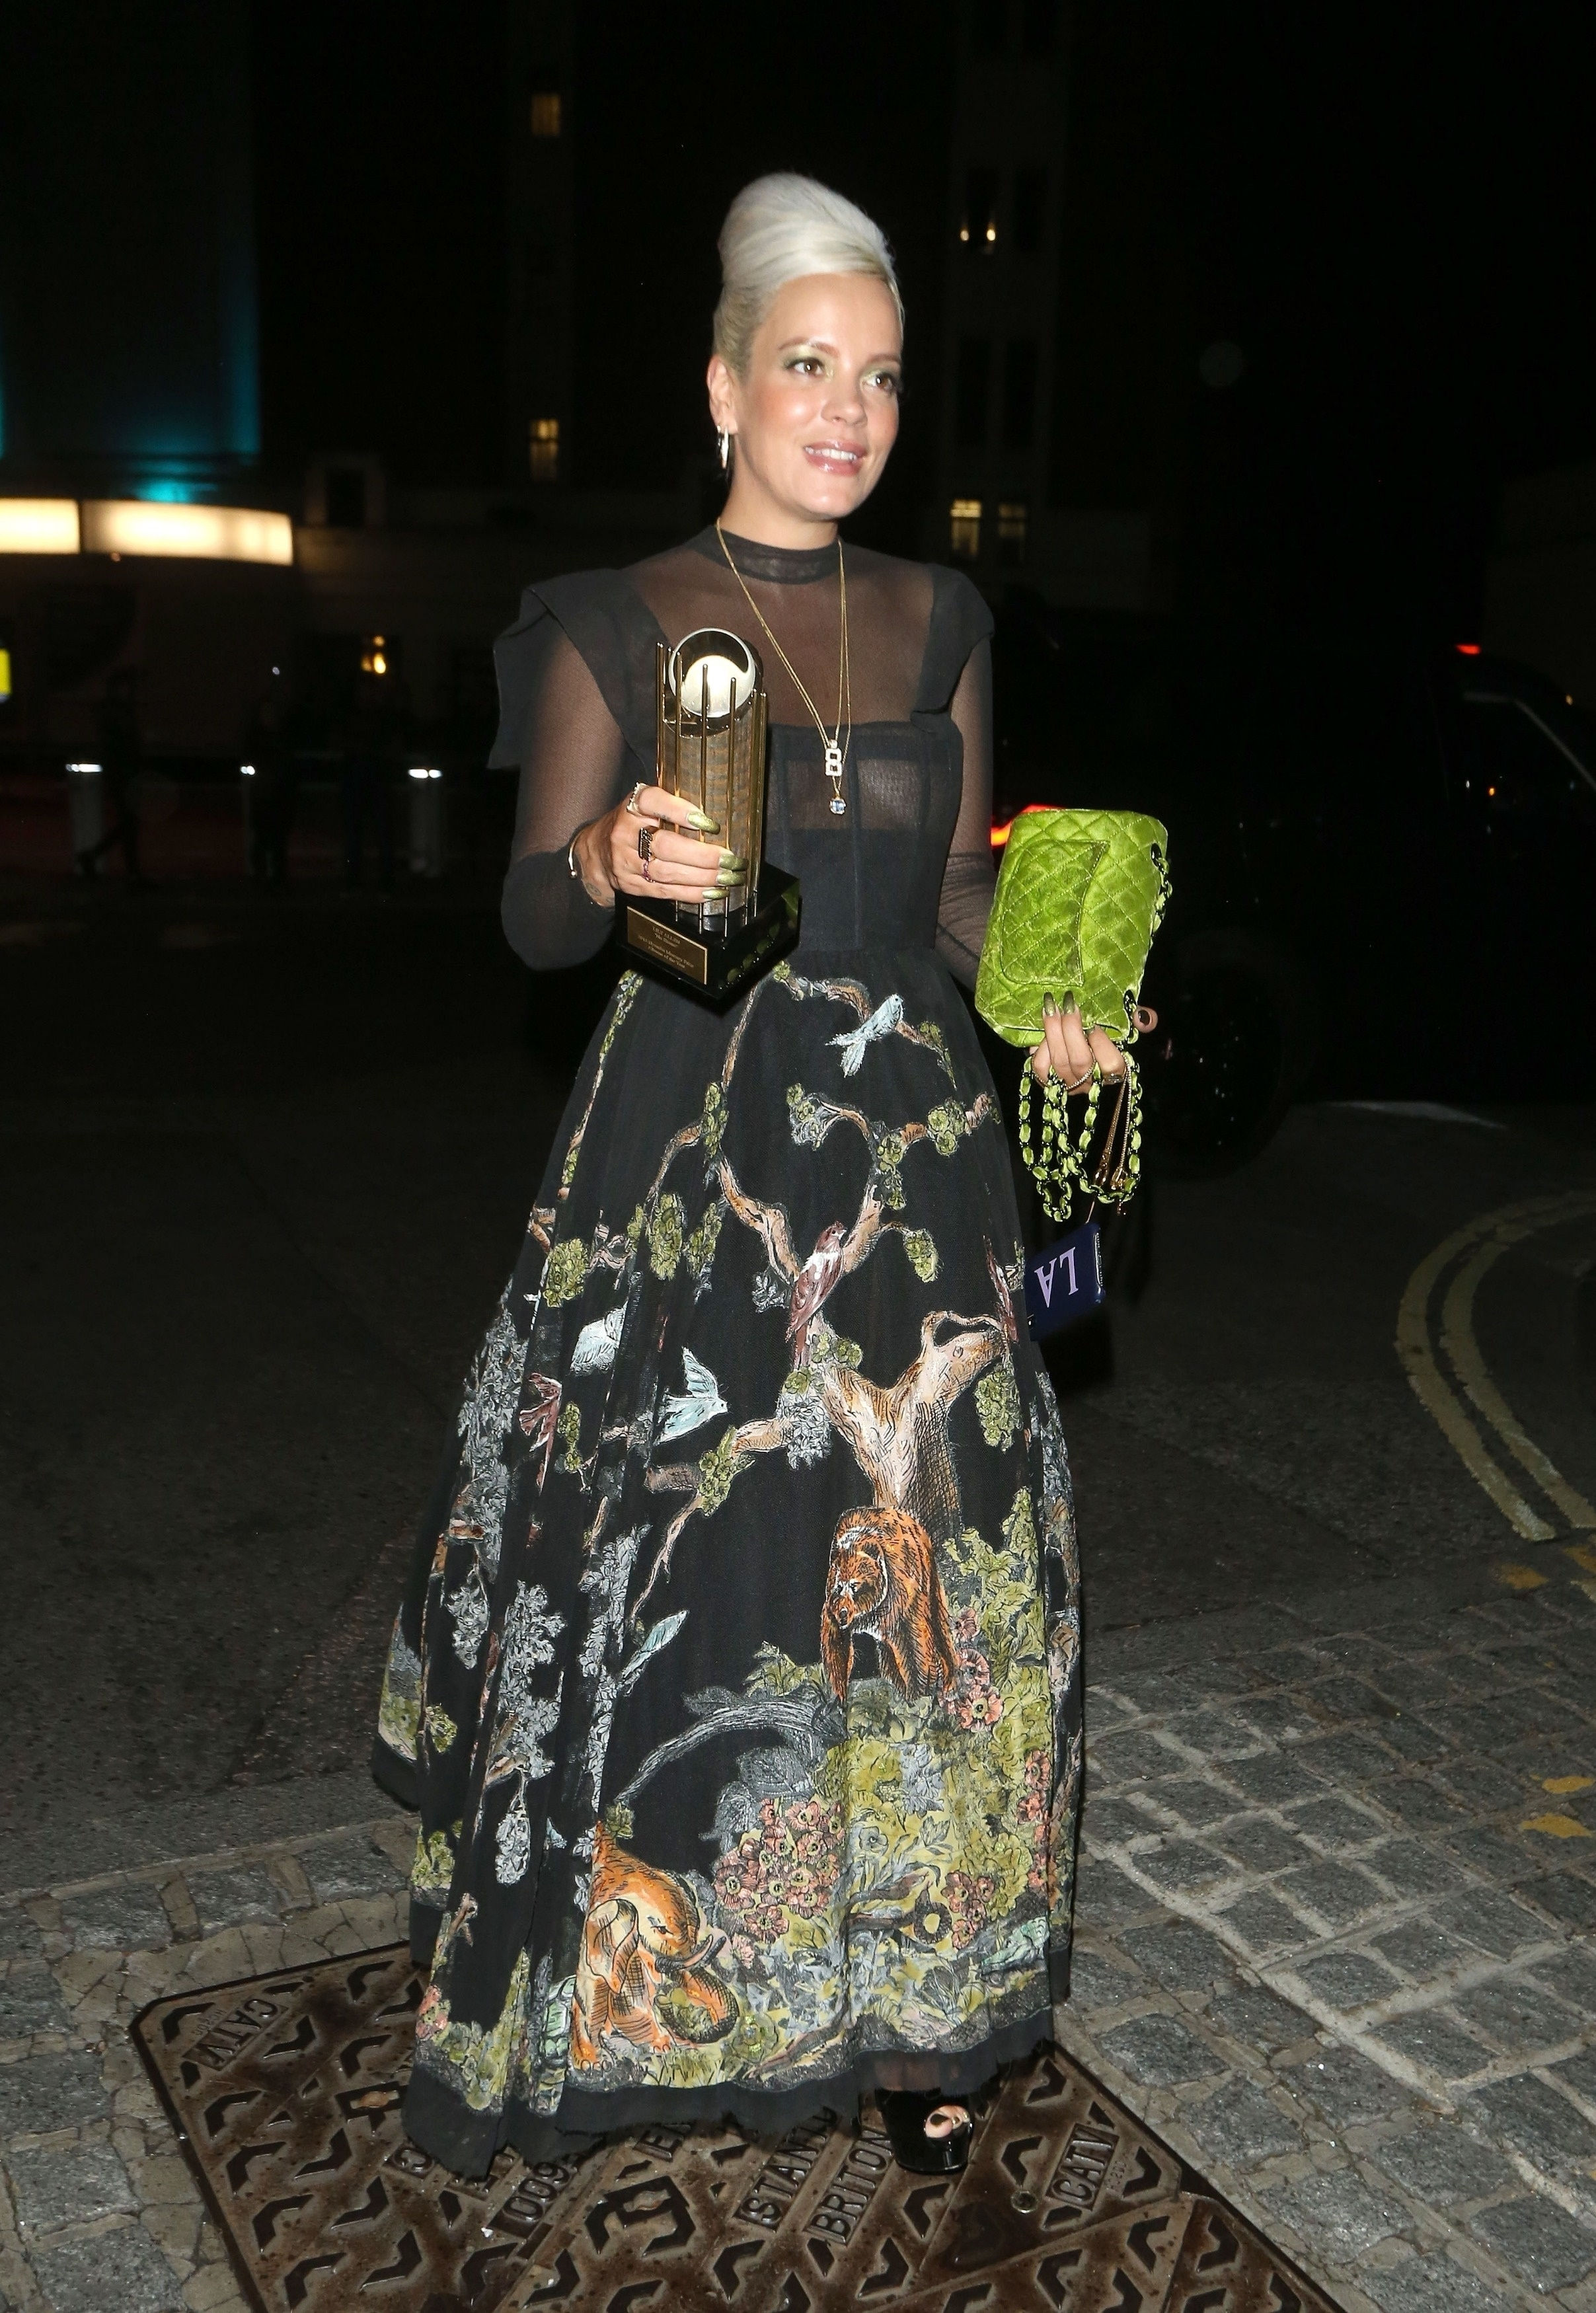 0919040453772_00_Lily-Allen-See-Through-TheFappeningBlog.com-1.jpg